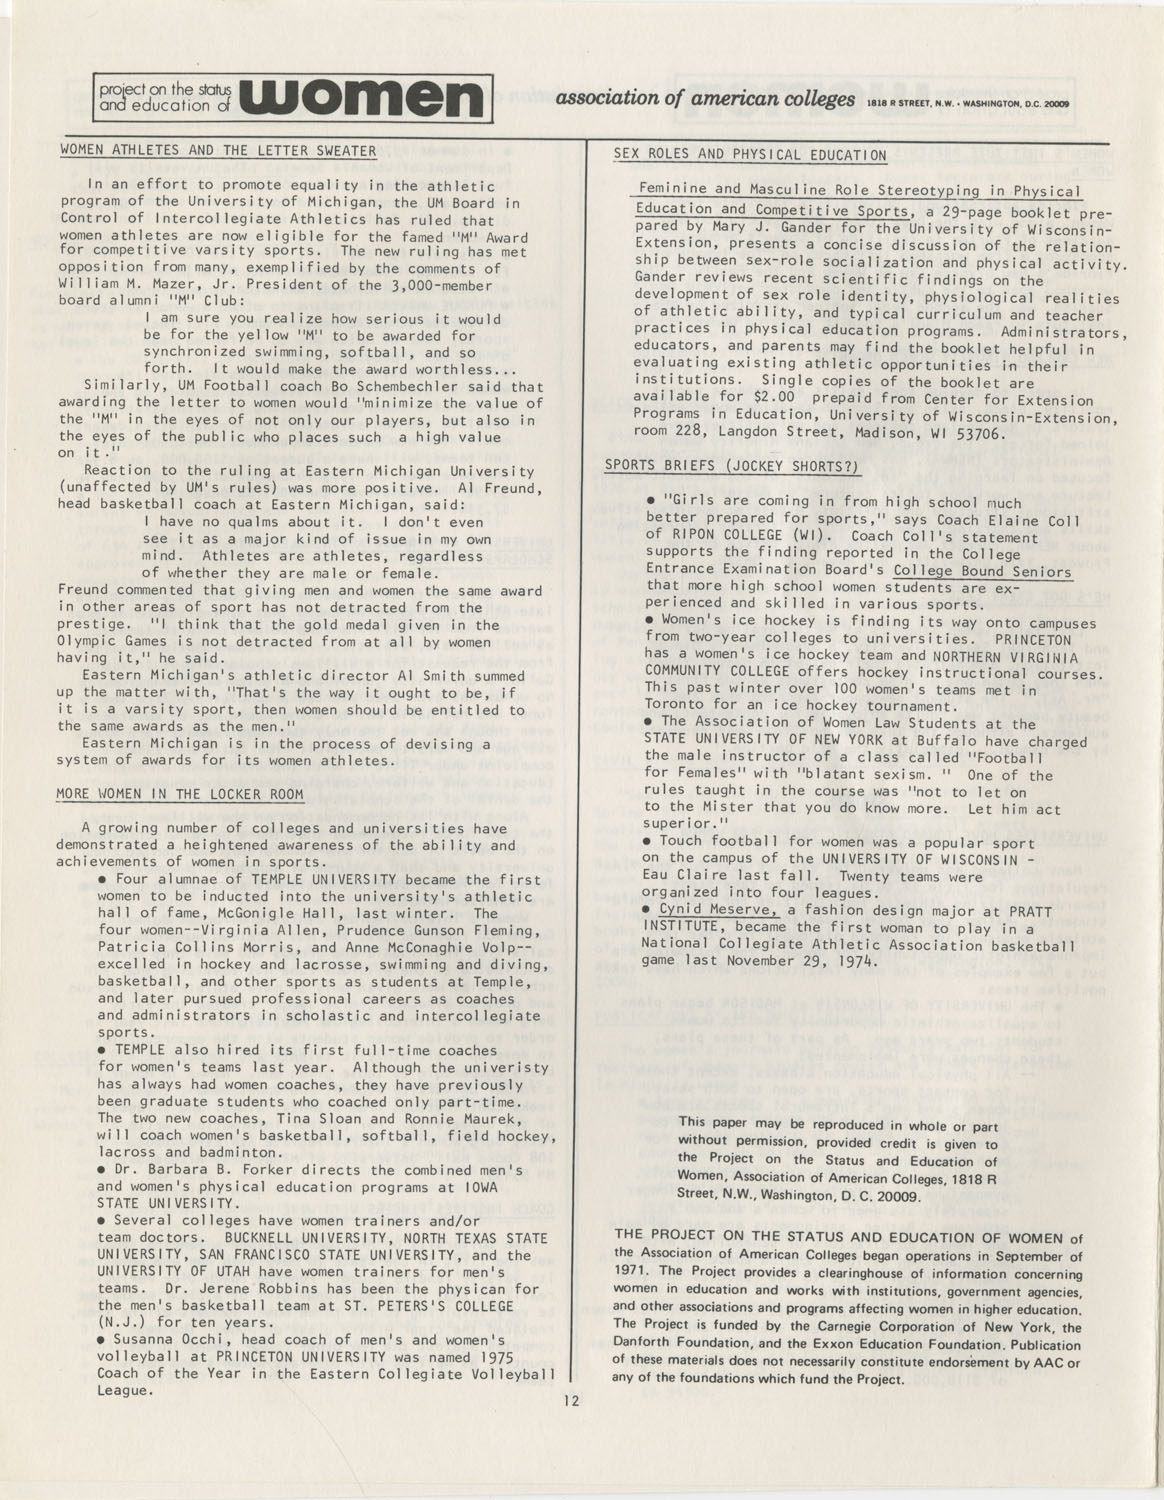 On Campus With Women, Association of American Colleges, November 1975, Page 12